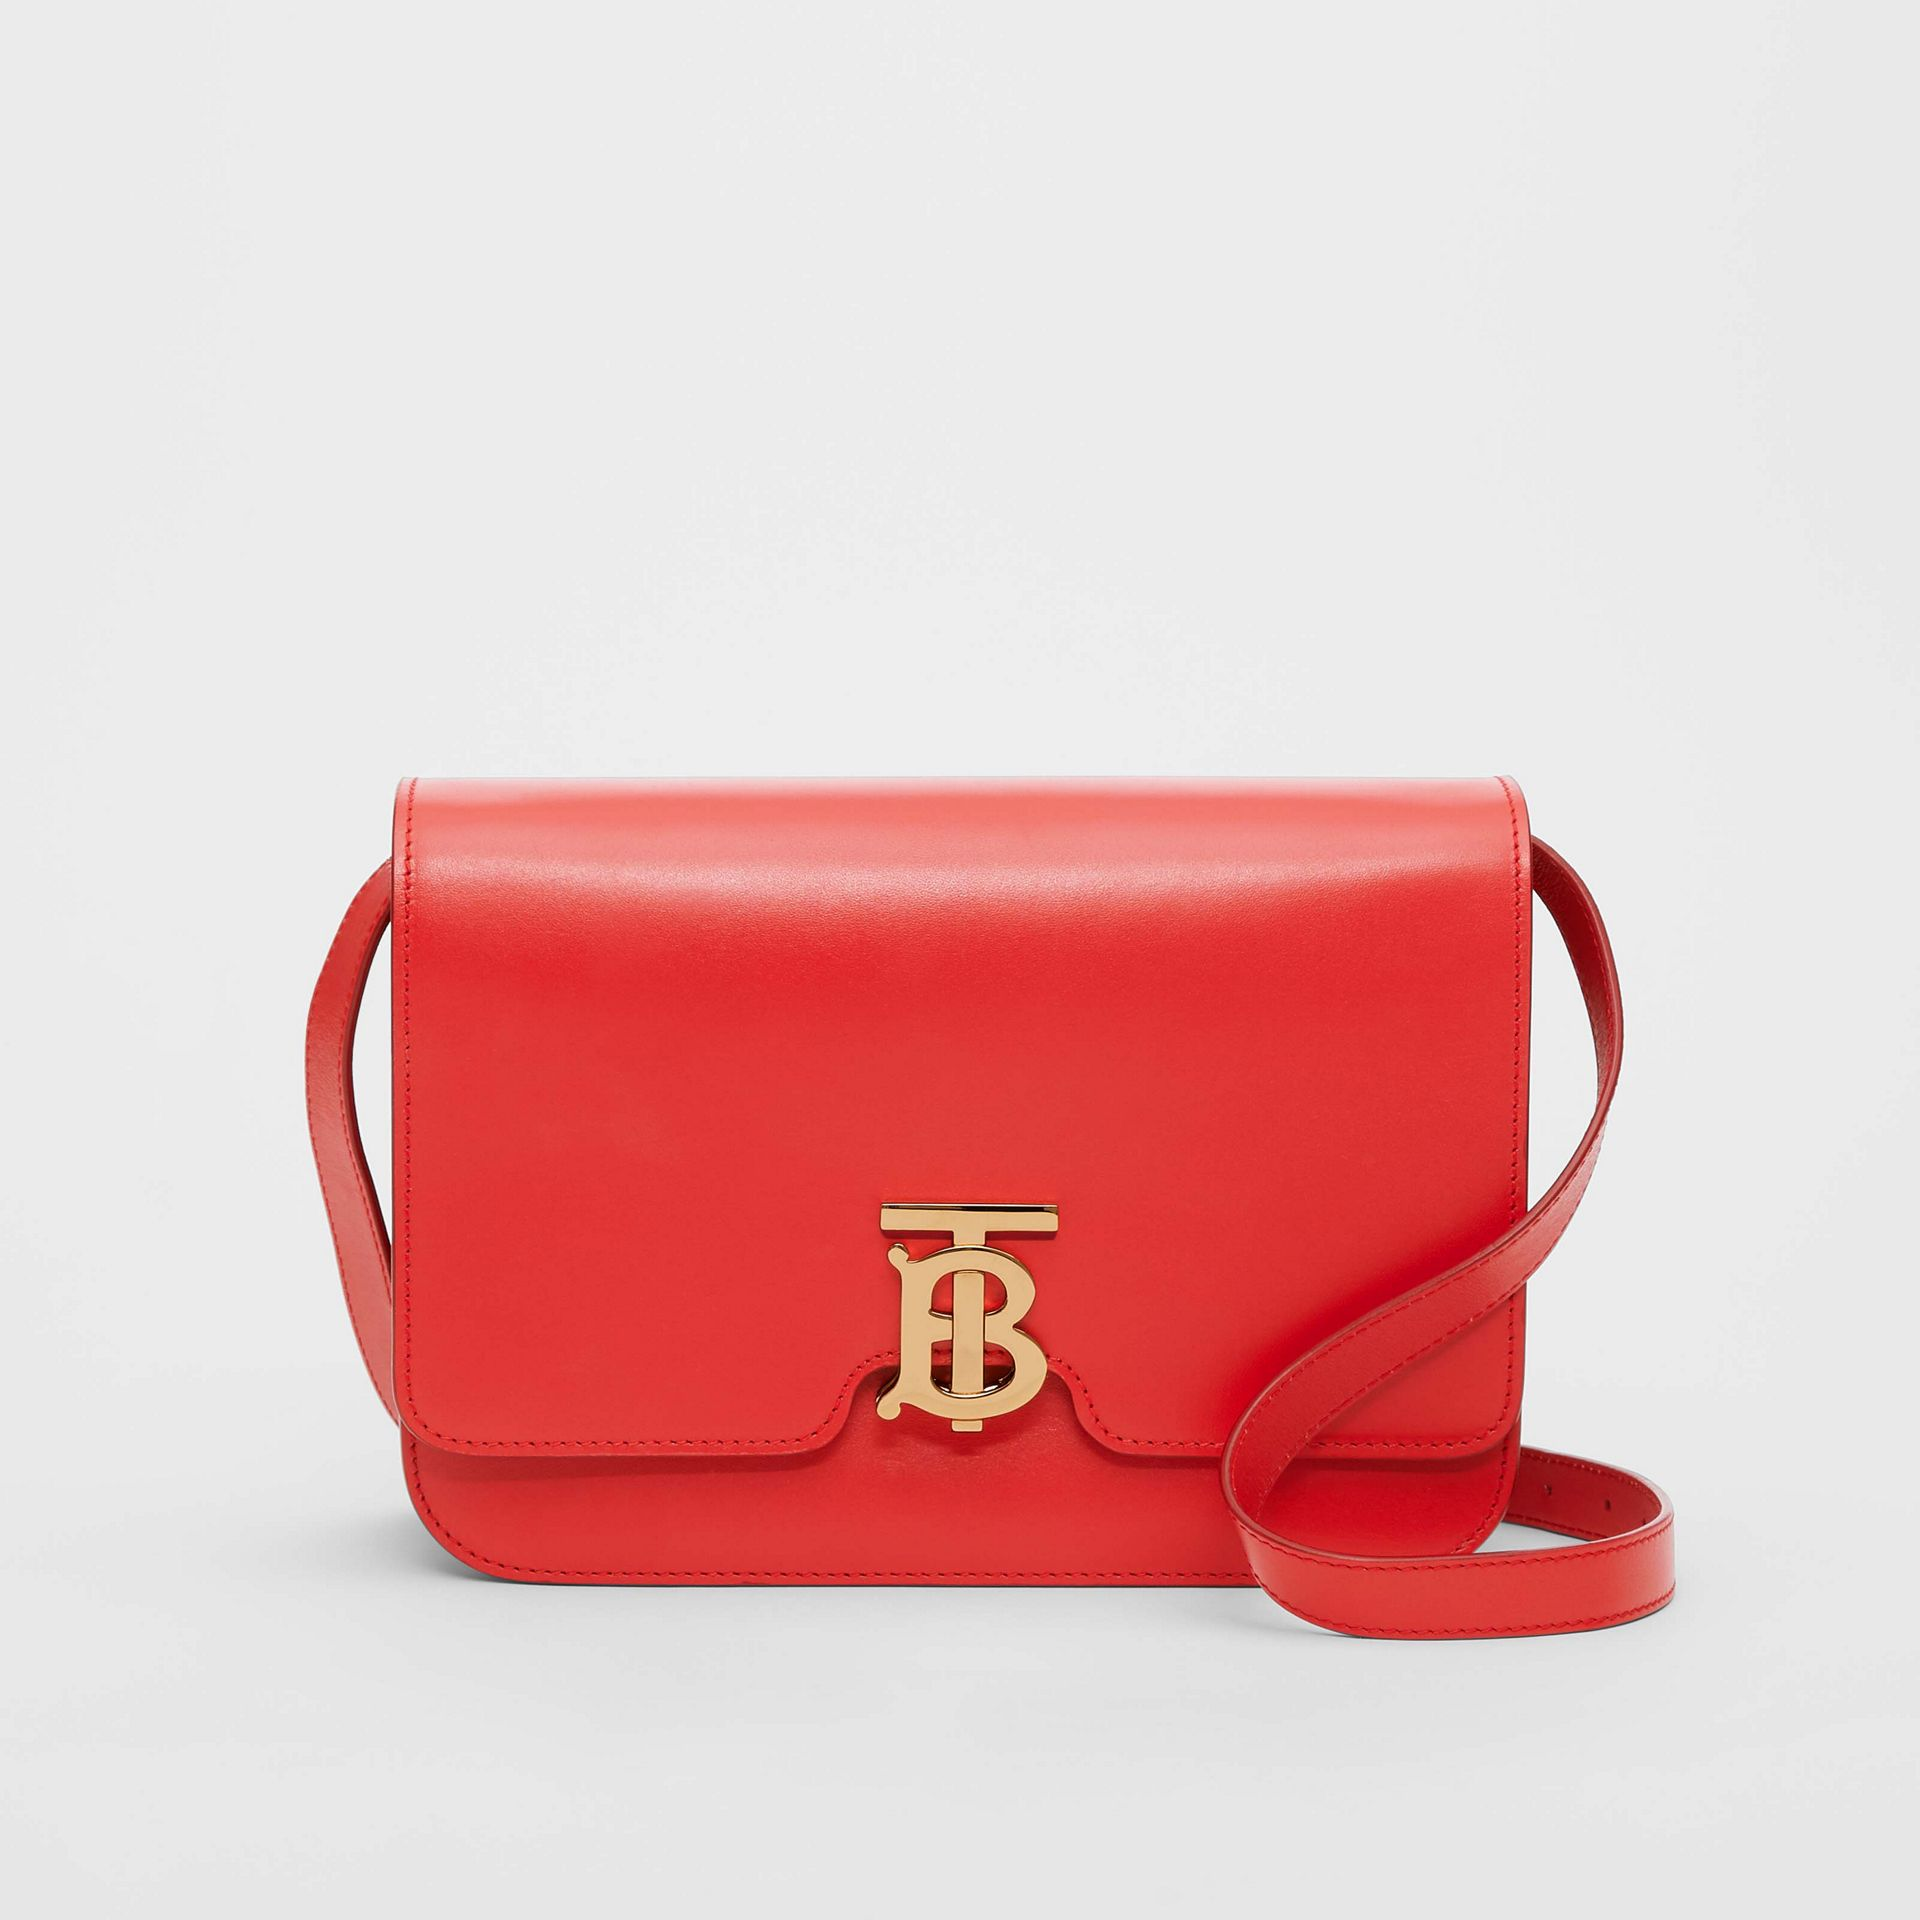 Medium Leather TB Bag in Bright Red | Burberry - gallery image 0